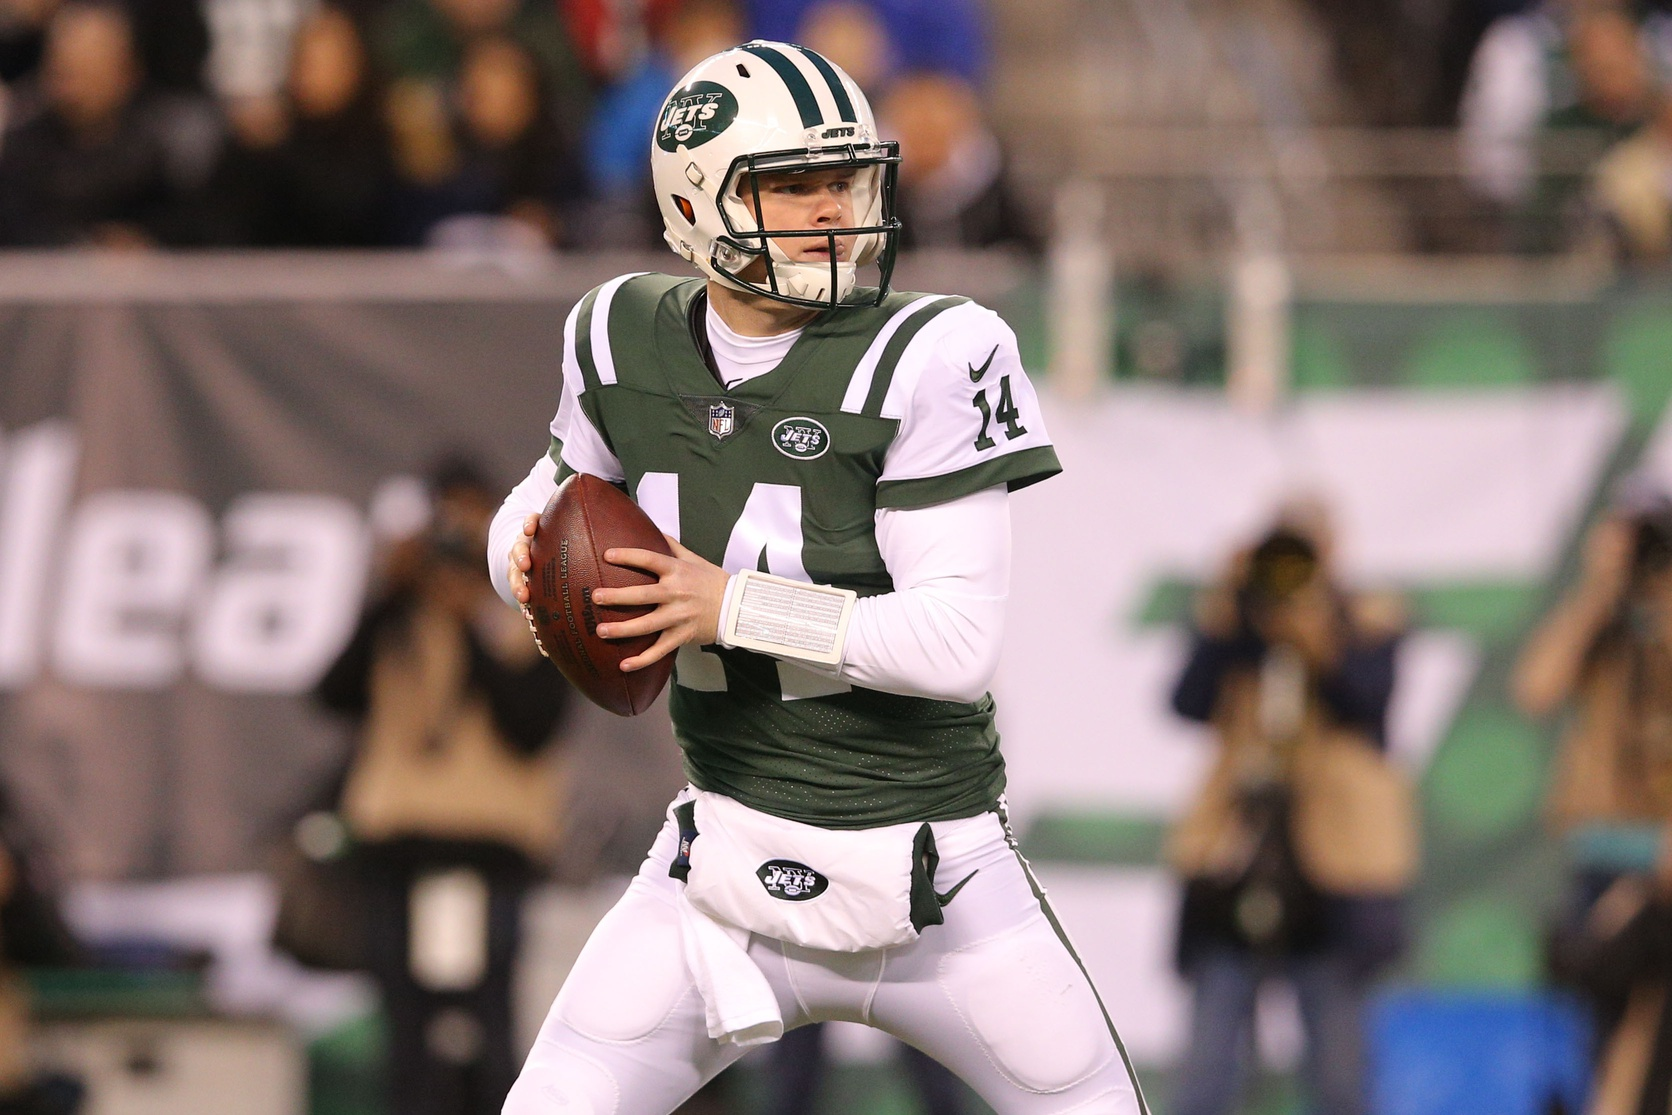 Sam Darnold's best performance to date should excite Jets fans for the future